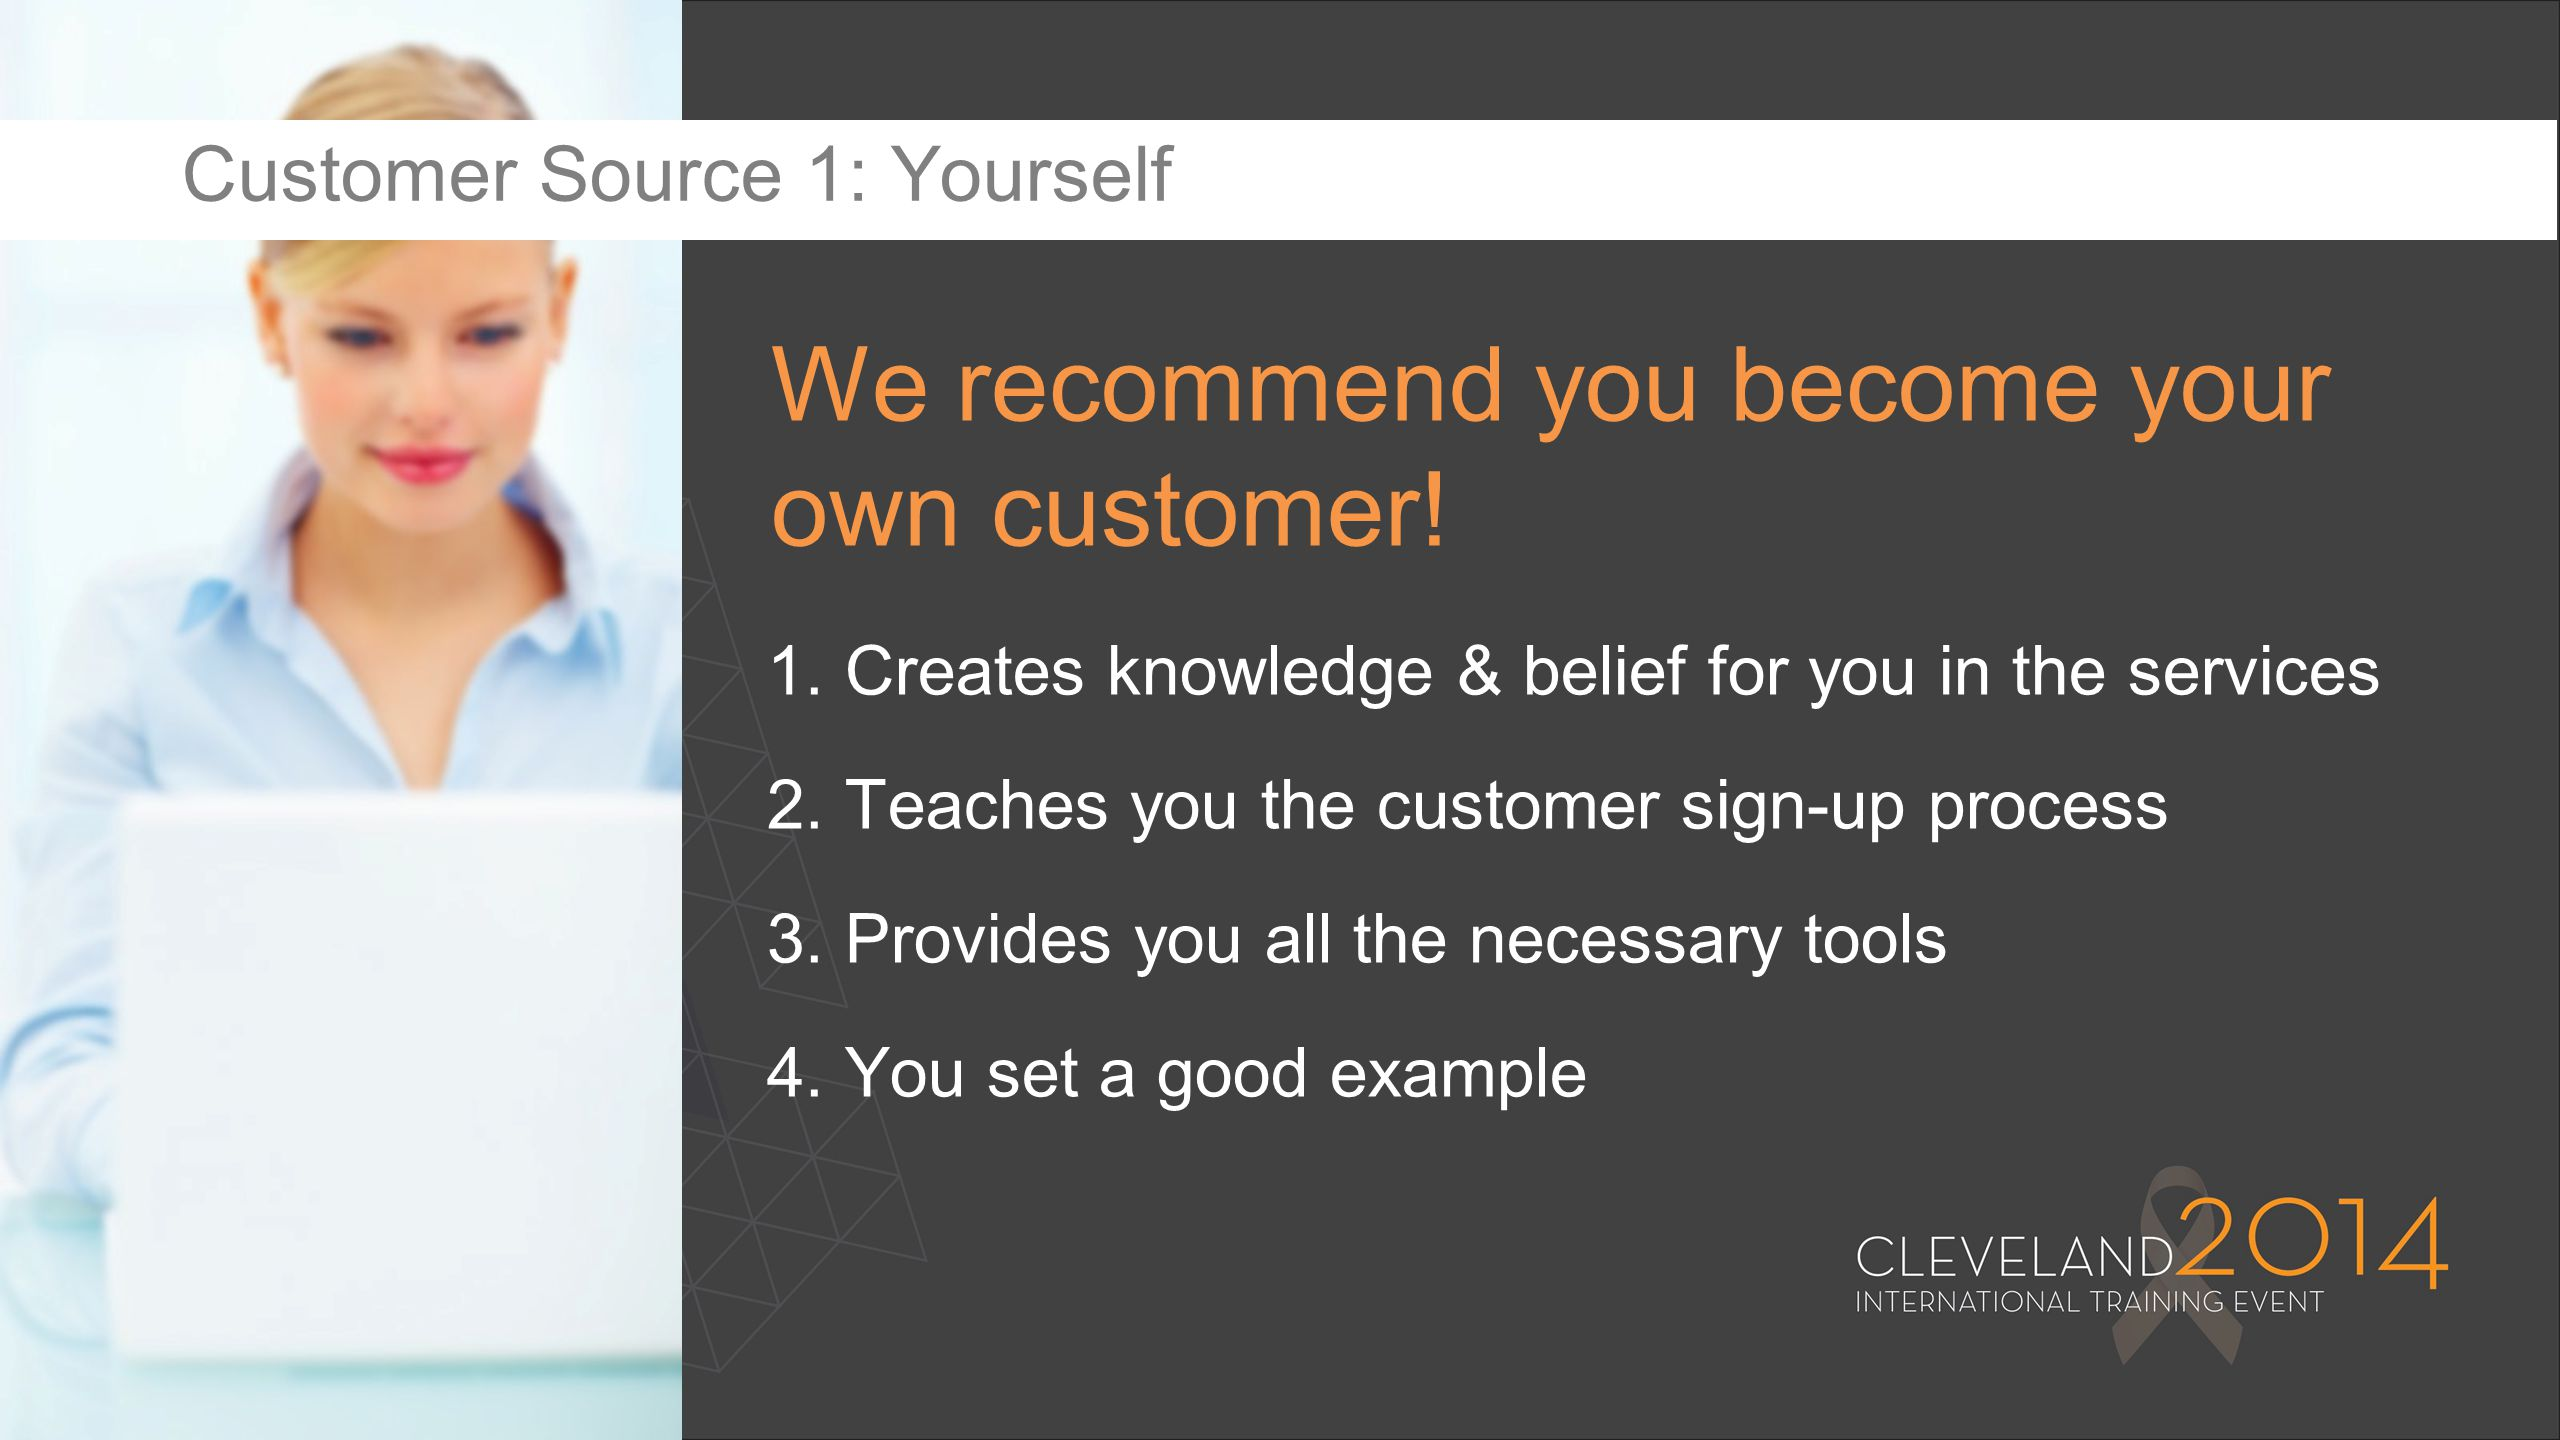 We recommend you become your own customer!